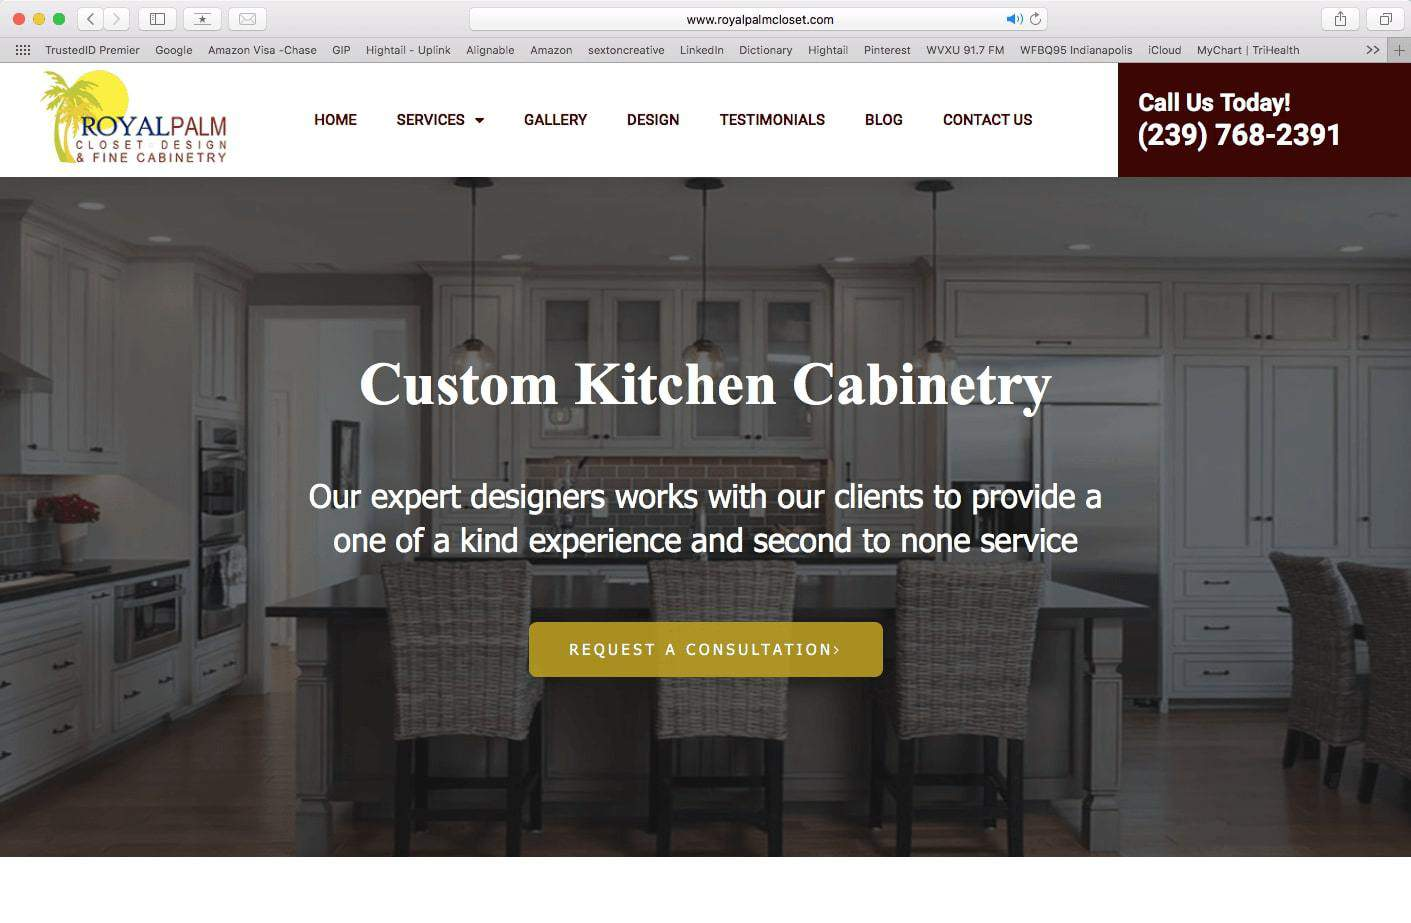 Example of a website for a kitchen cabinet company